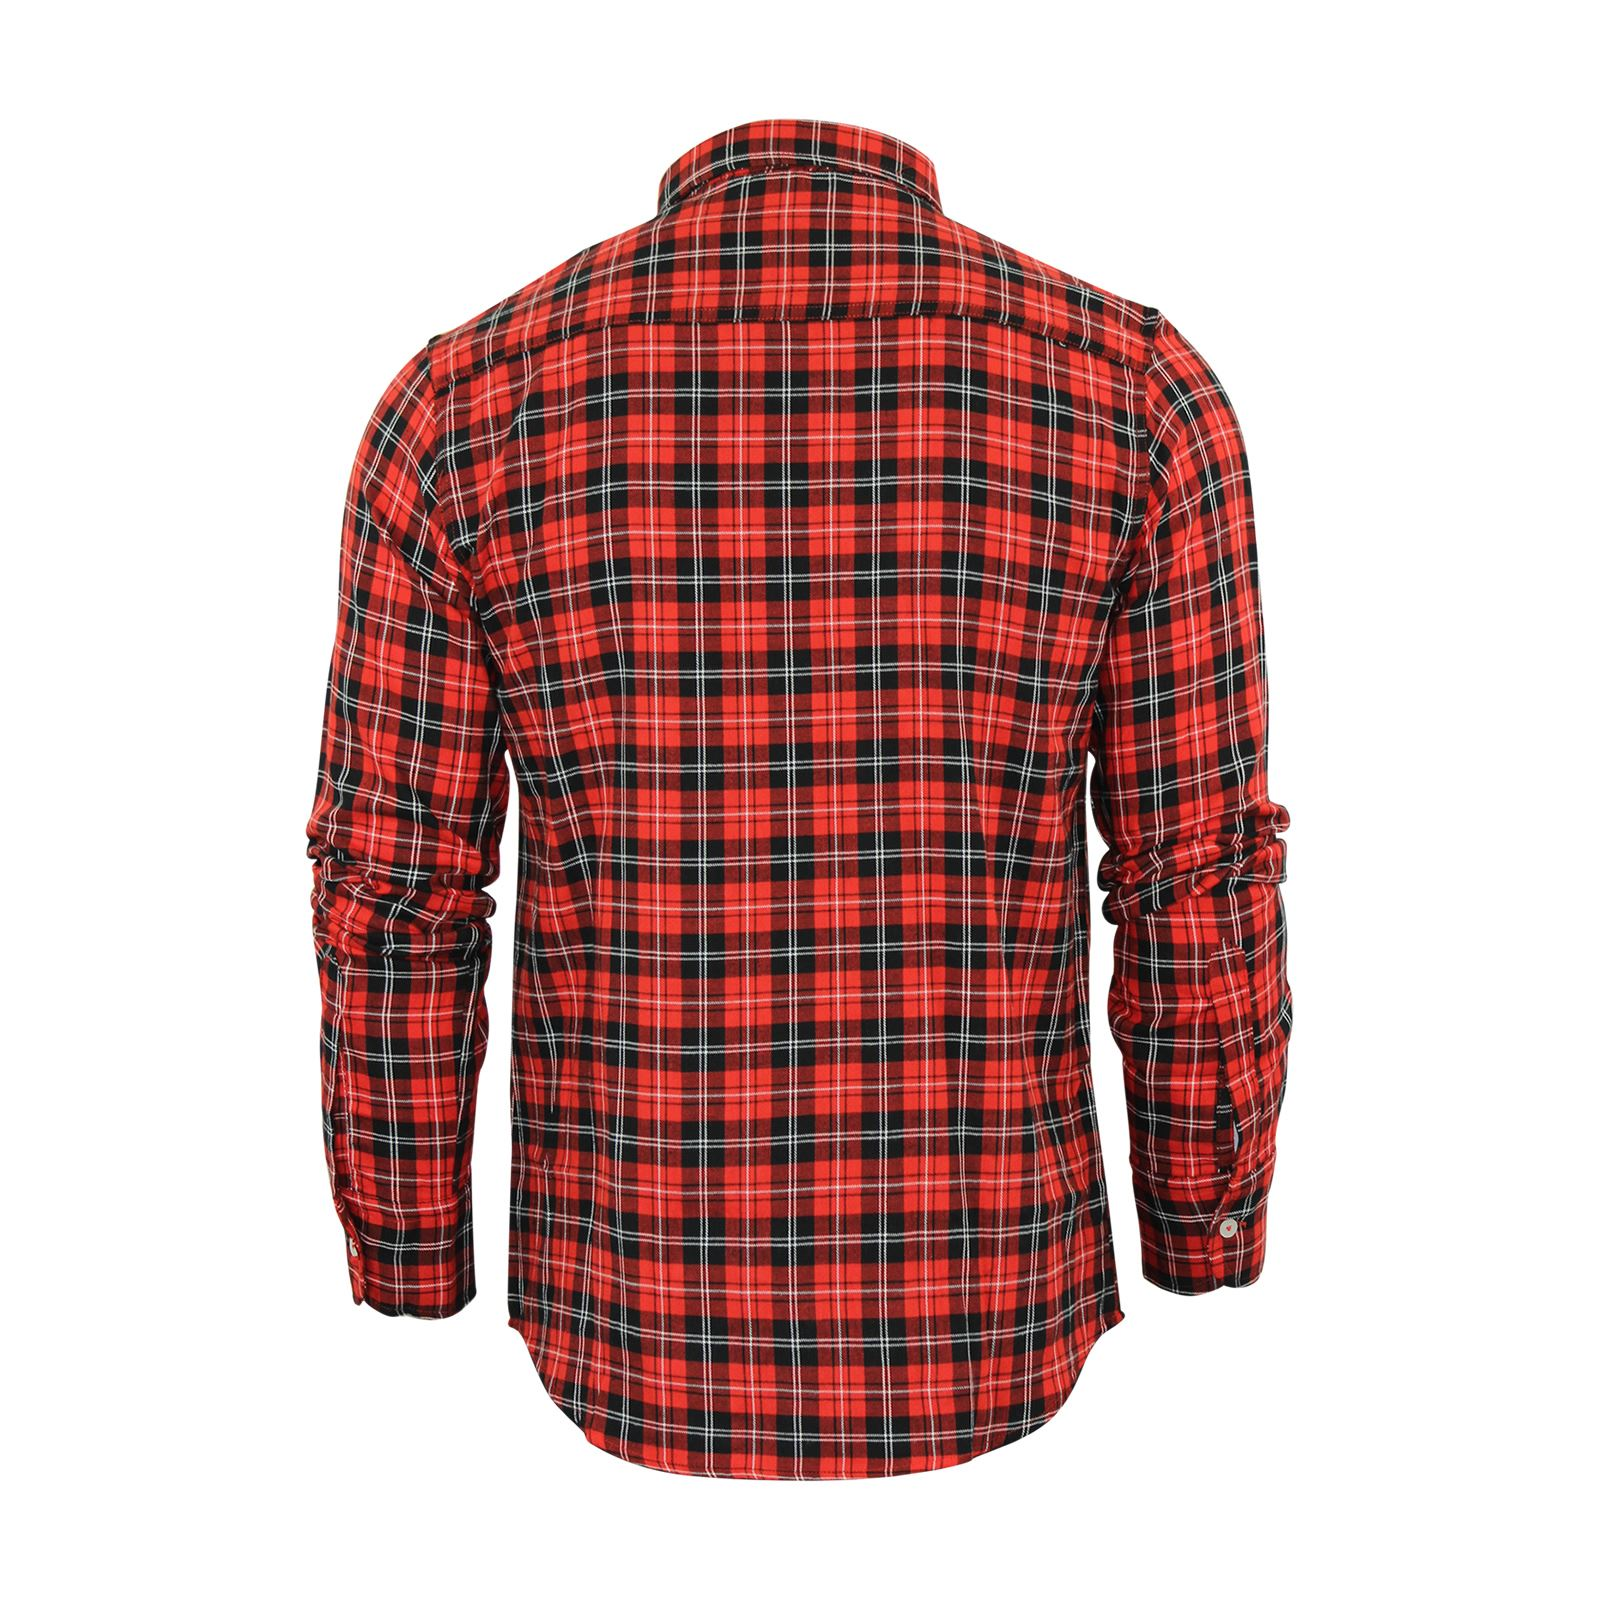 Mens-Check-Shirt-Brave-Soul-Flannel-Brushed-Cotton-Long-Sleeve-Casual-Top thumbnail 60